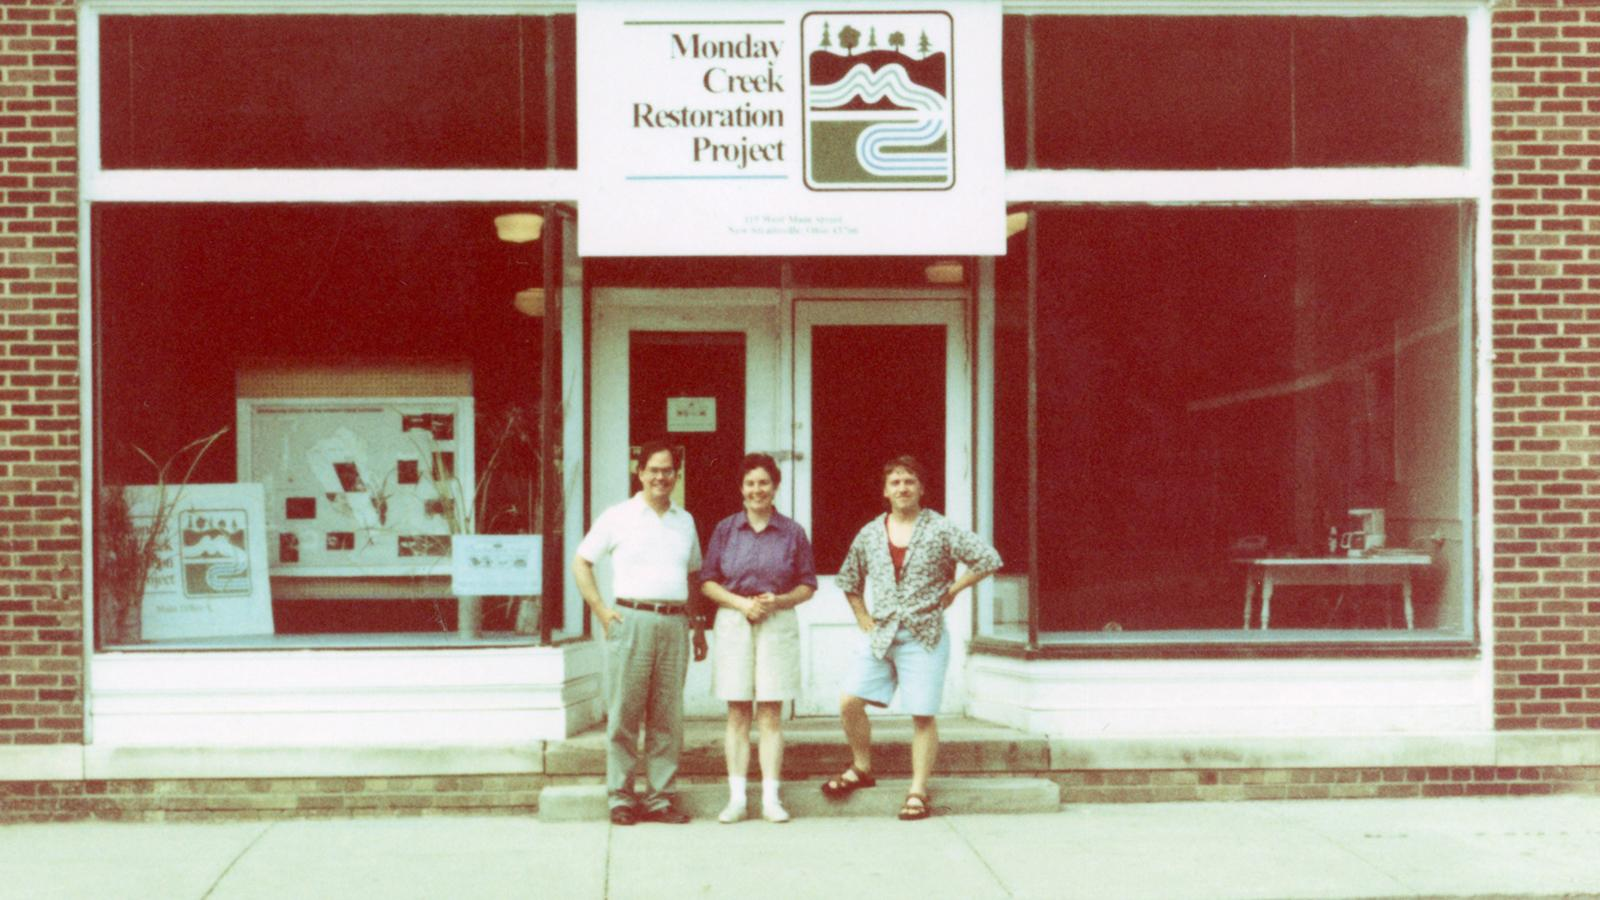 MCRP's office opening. Pictured, from left: Mike Steinmaus, Norah Newberg, and Troy Mellott (an Americorps VISTA)